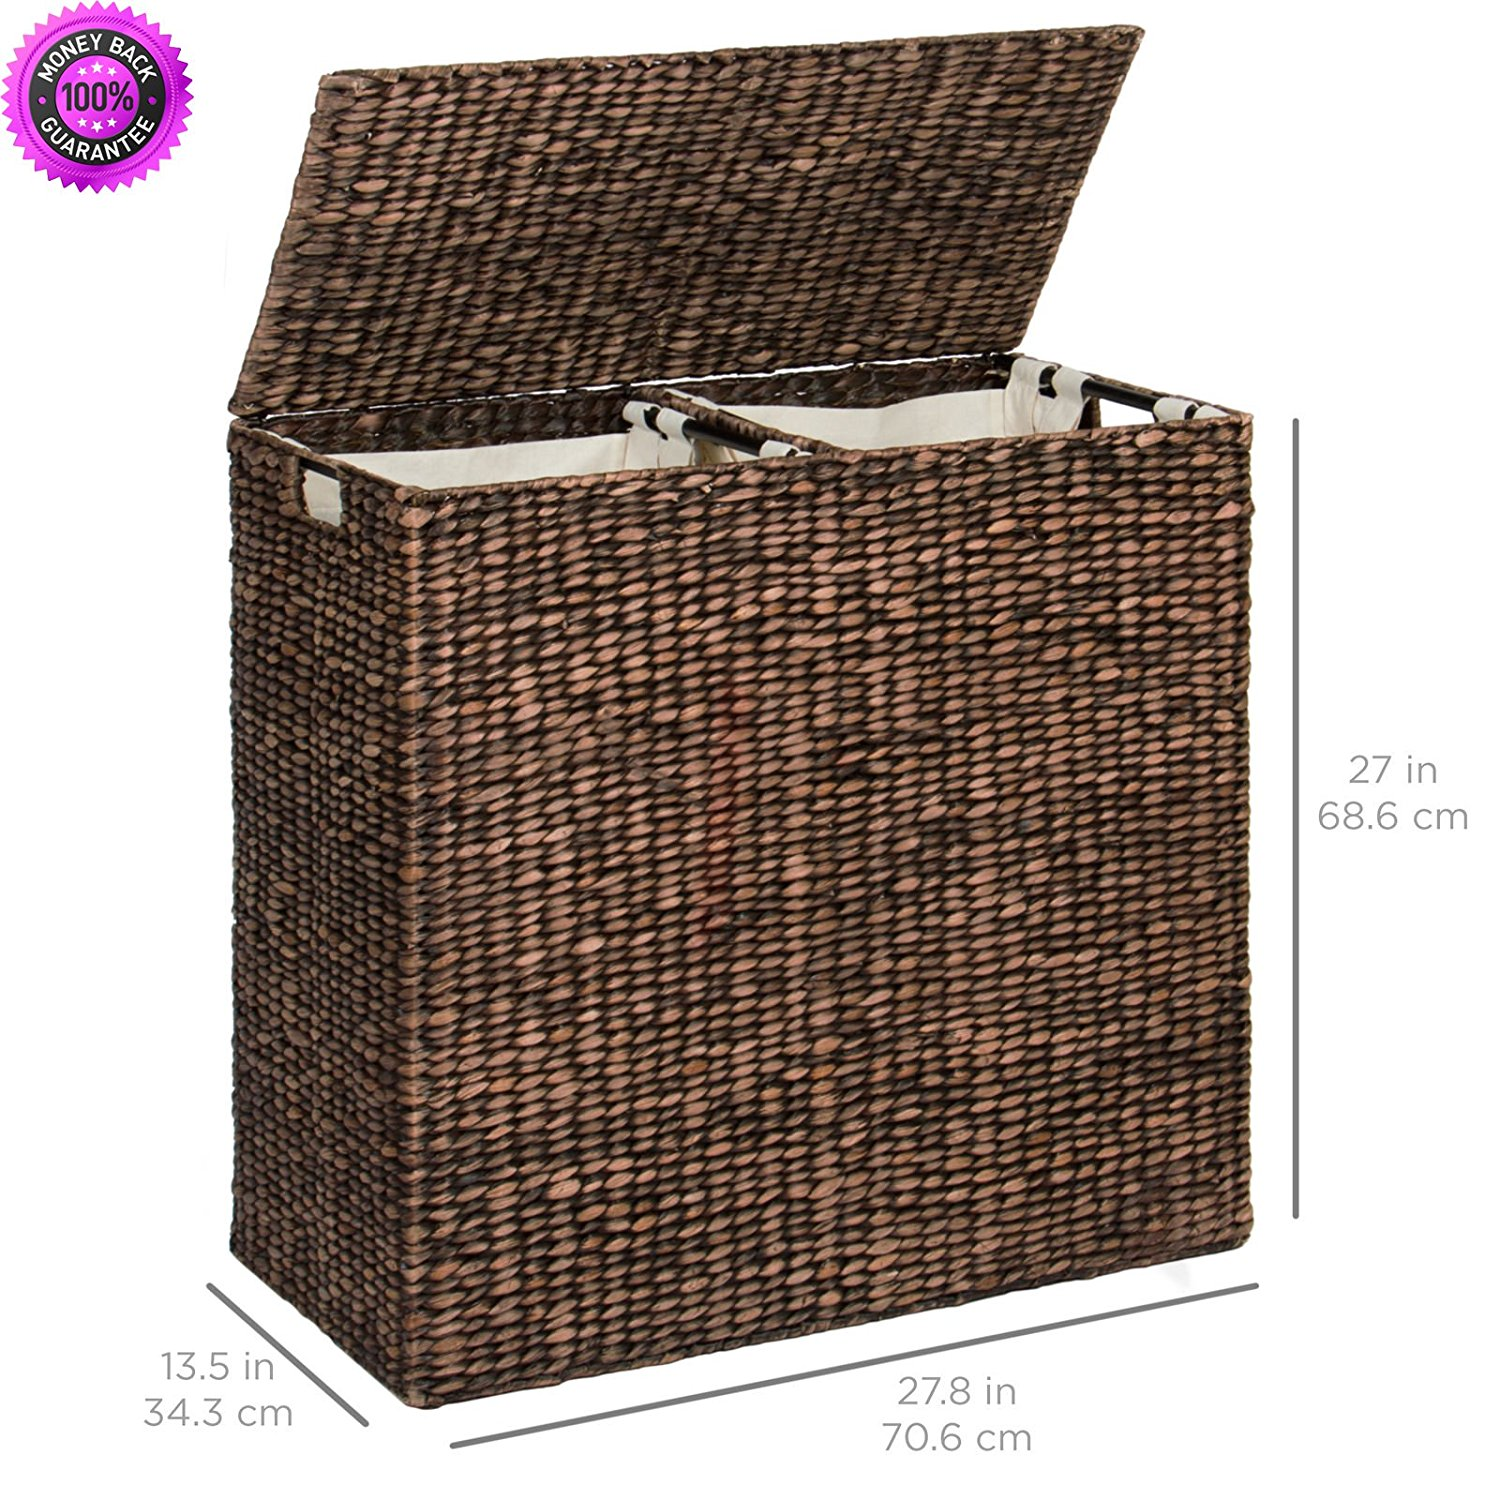 DzVeX Water Hyacinth Double Laundry Hamper Basket 2 Liner Basket Bags Brushed Espresso And wicker hampers at bed bath and beyond wicker laundry basket with lid elephant hamper clothes hampers that